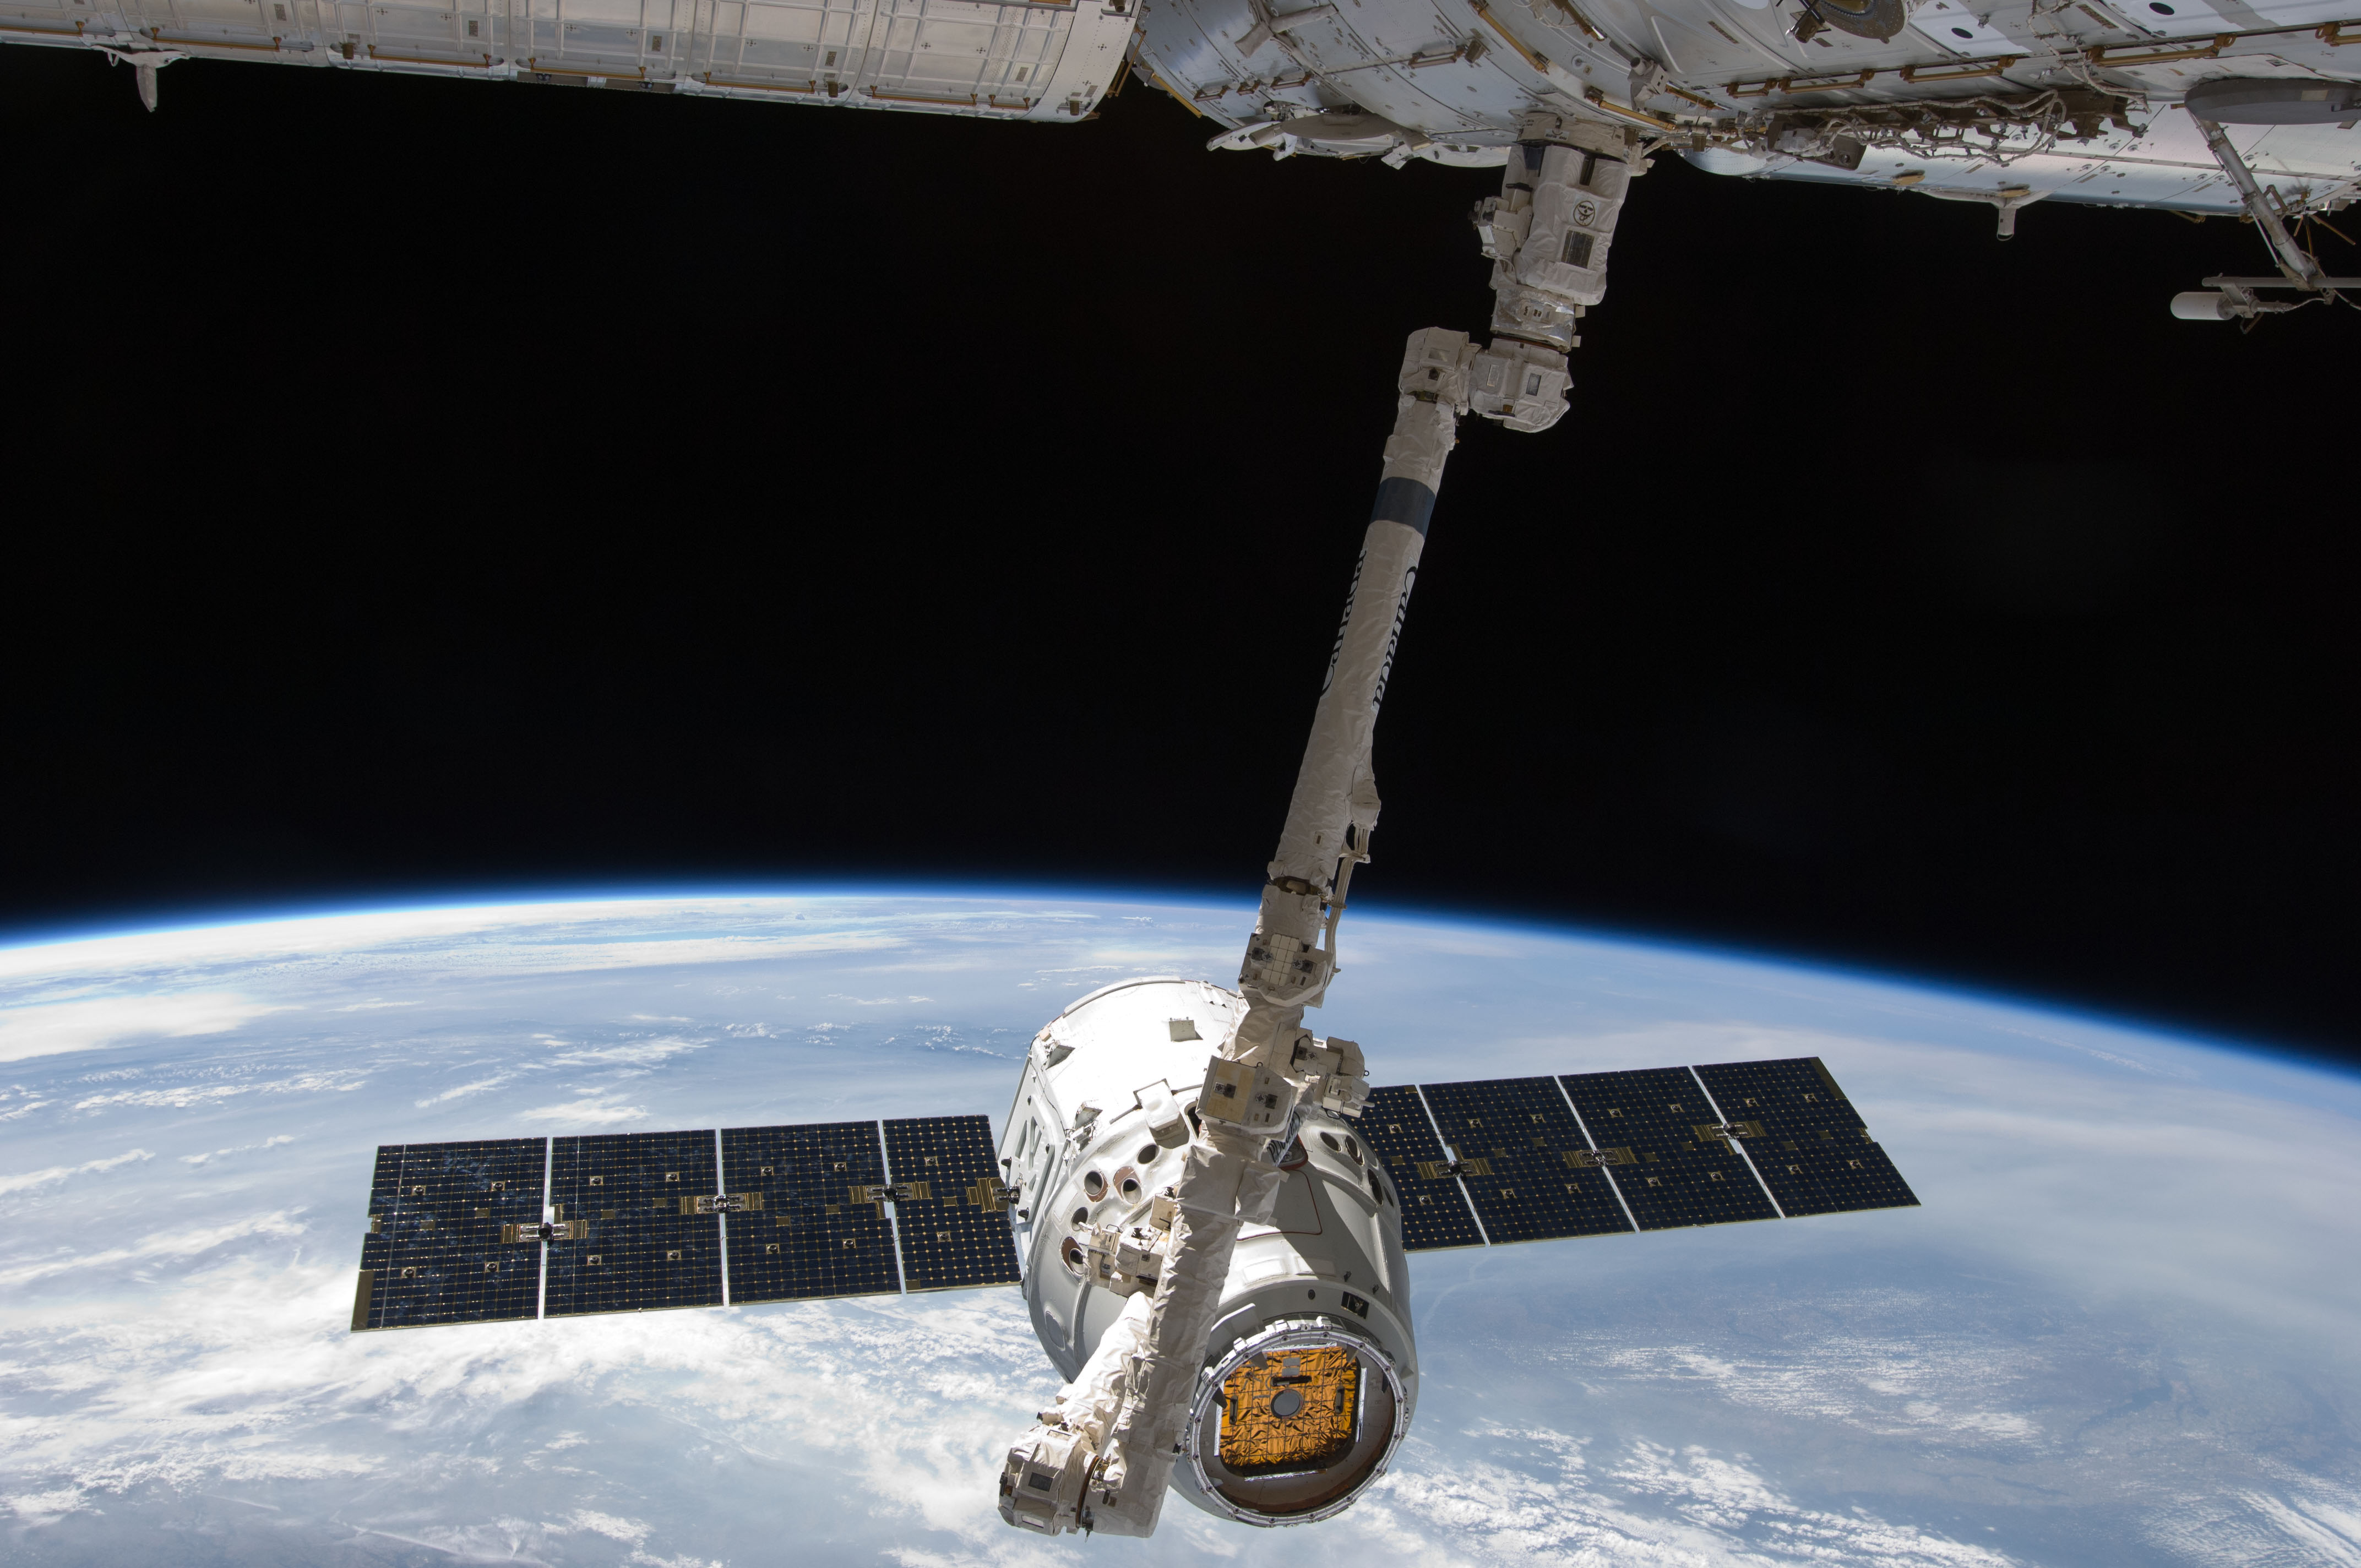 spacex - photo #42